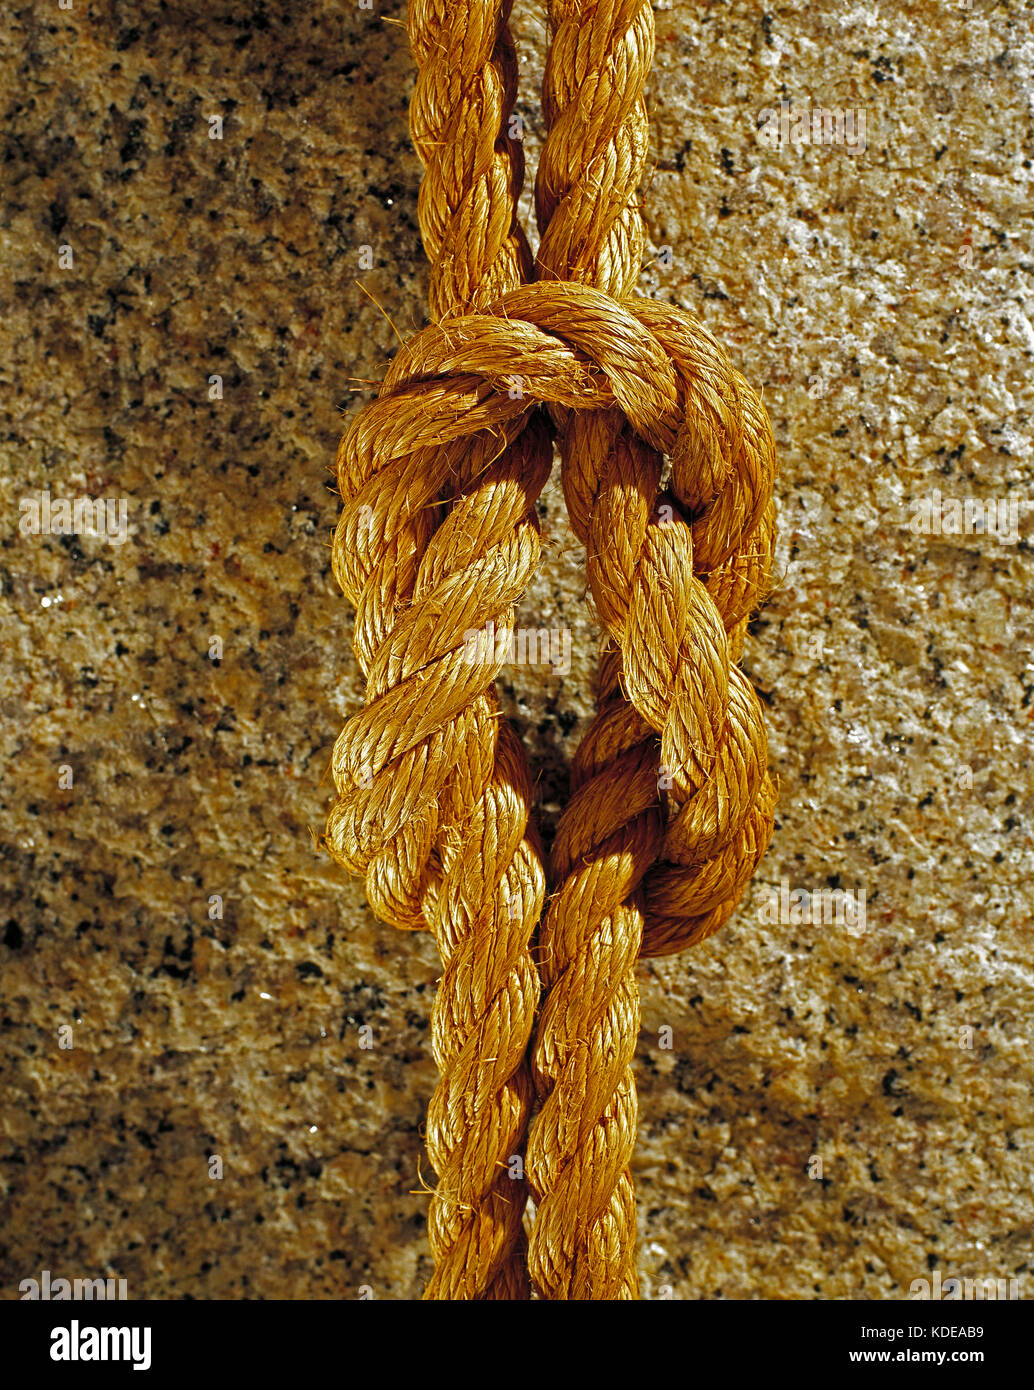 Still life. Close up of rope tied as reef knot. - Stock Image